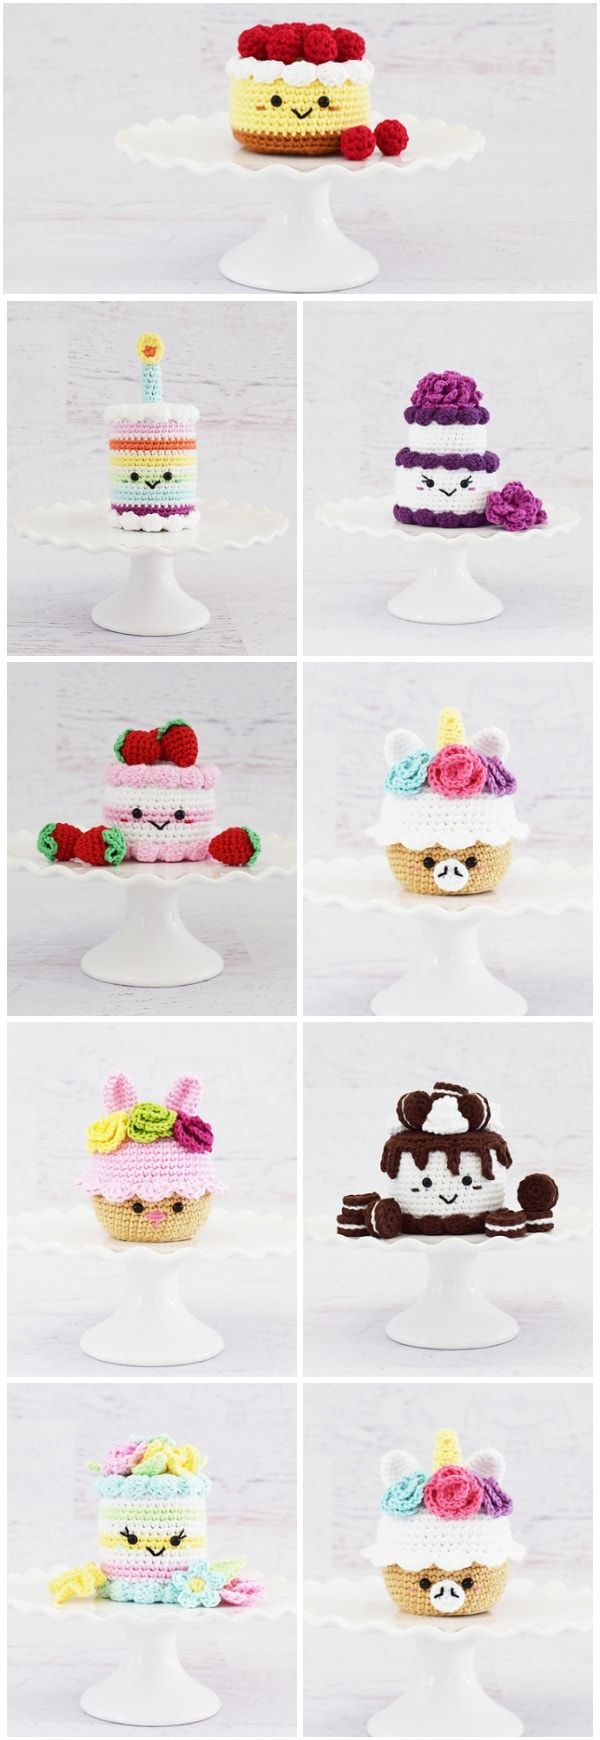 9 Free Crochet Cupcake and Cake Patterns